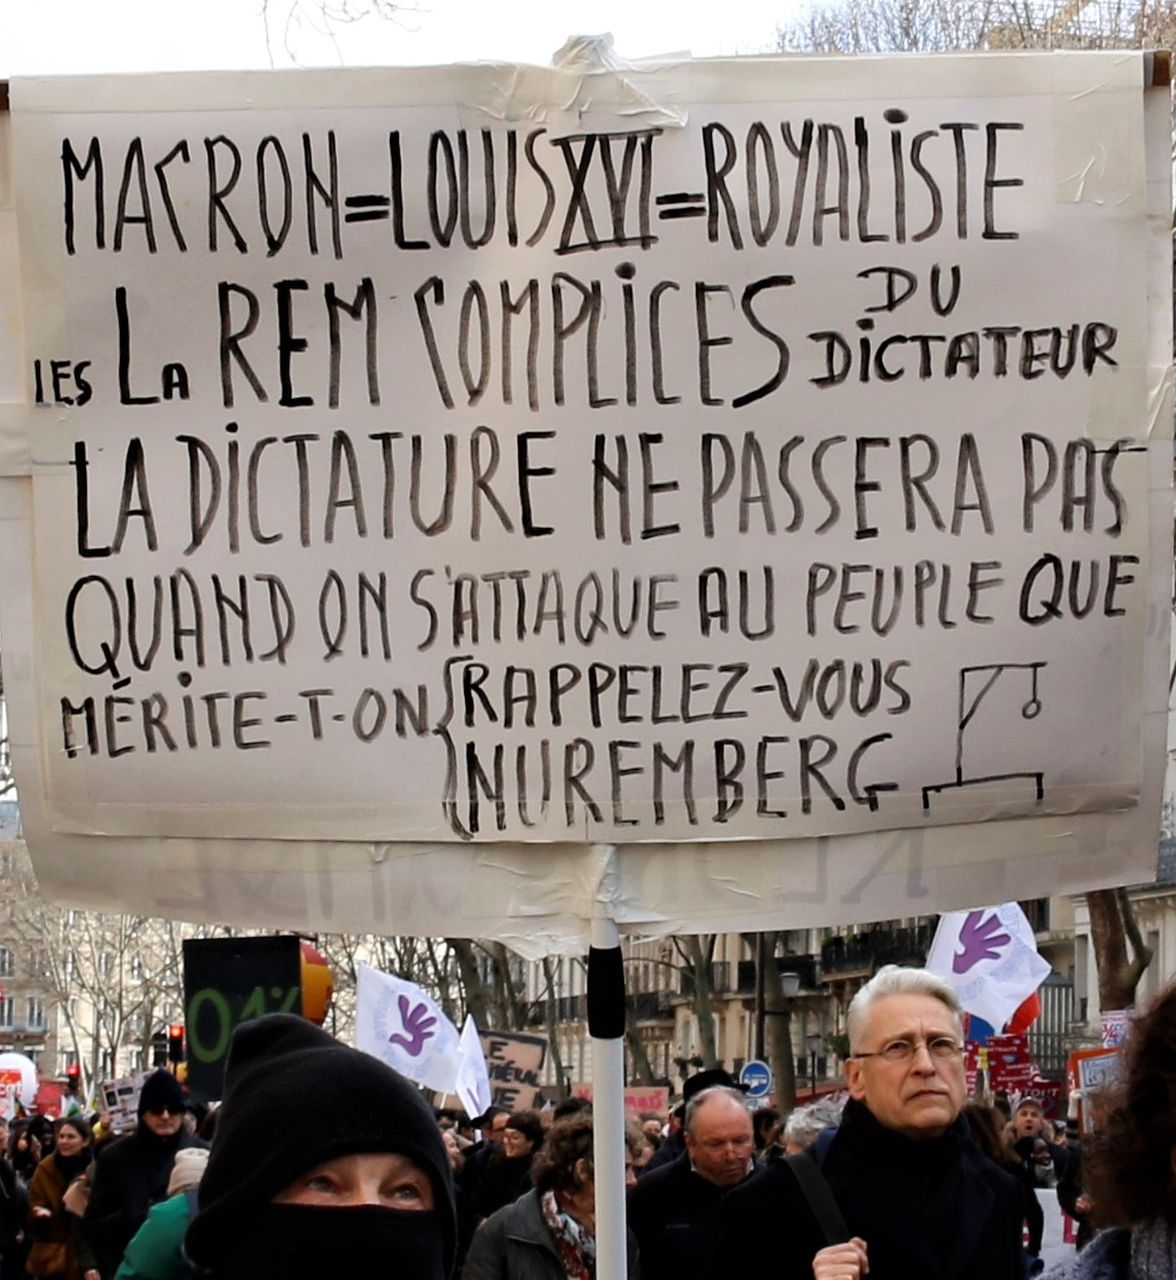 Macron, King Louis XVI, royalist, his party is complicit. Dictatorship will not be tolerated. What do you deserve when you attack the people. Remember the Nuremberg trials, the sign says